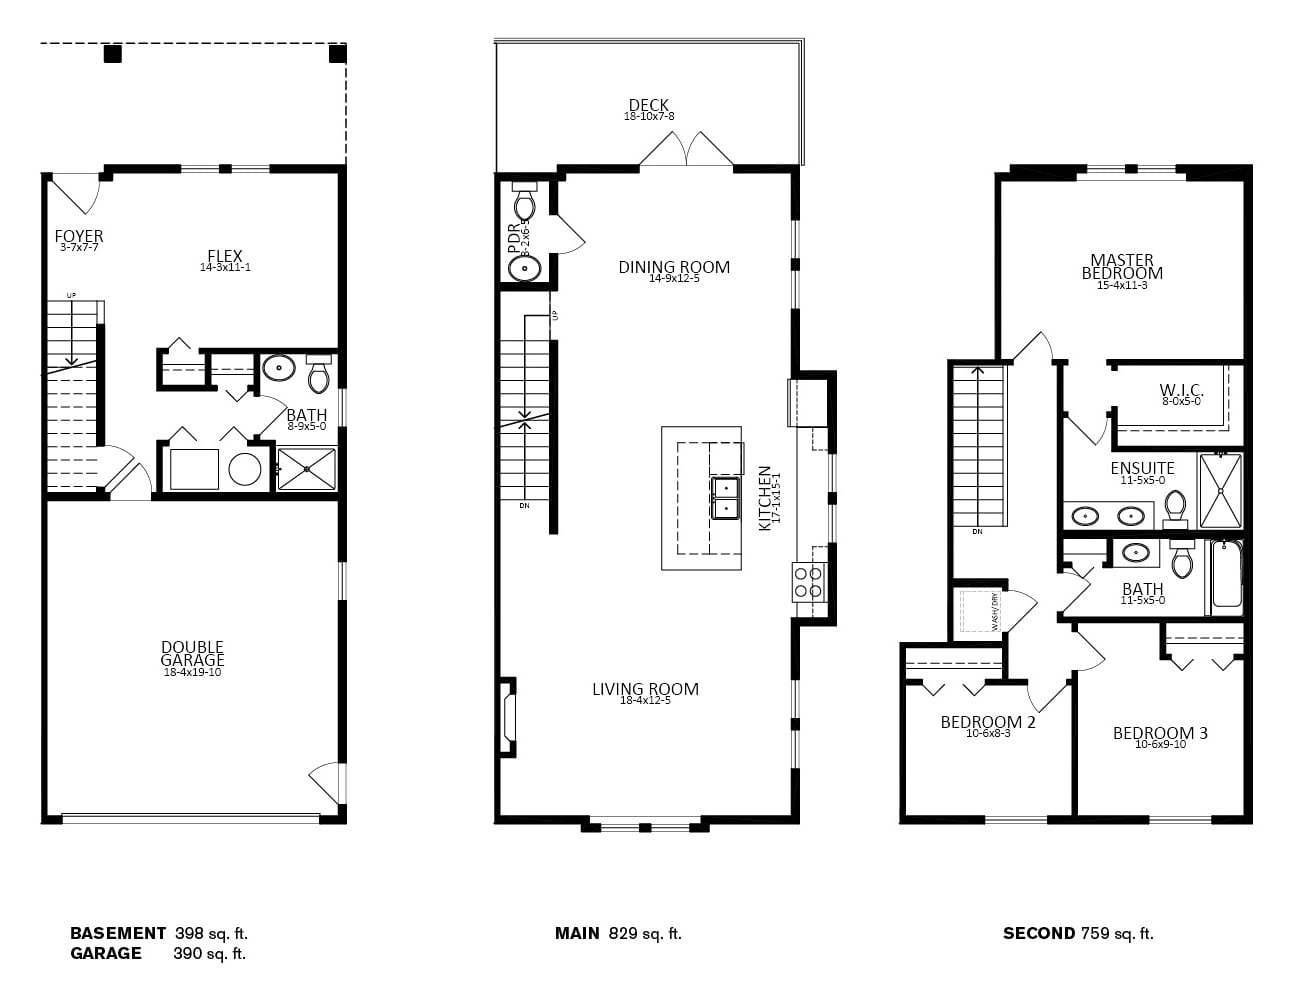 New_716_Floorplans_d1C